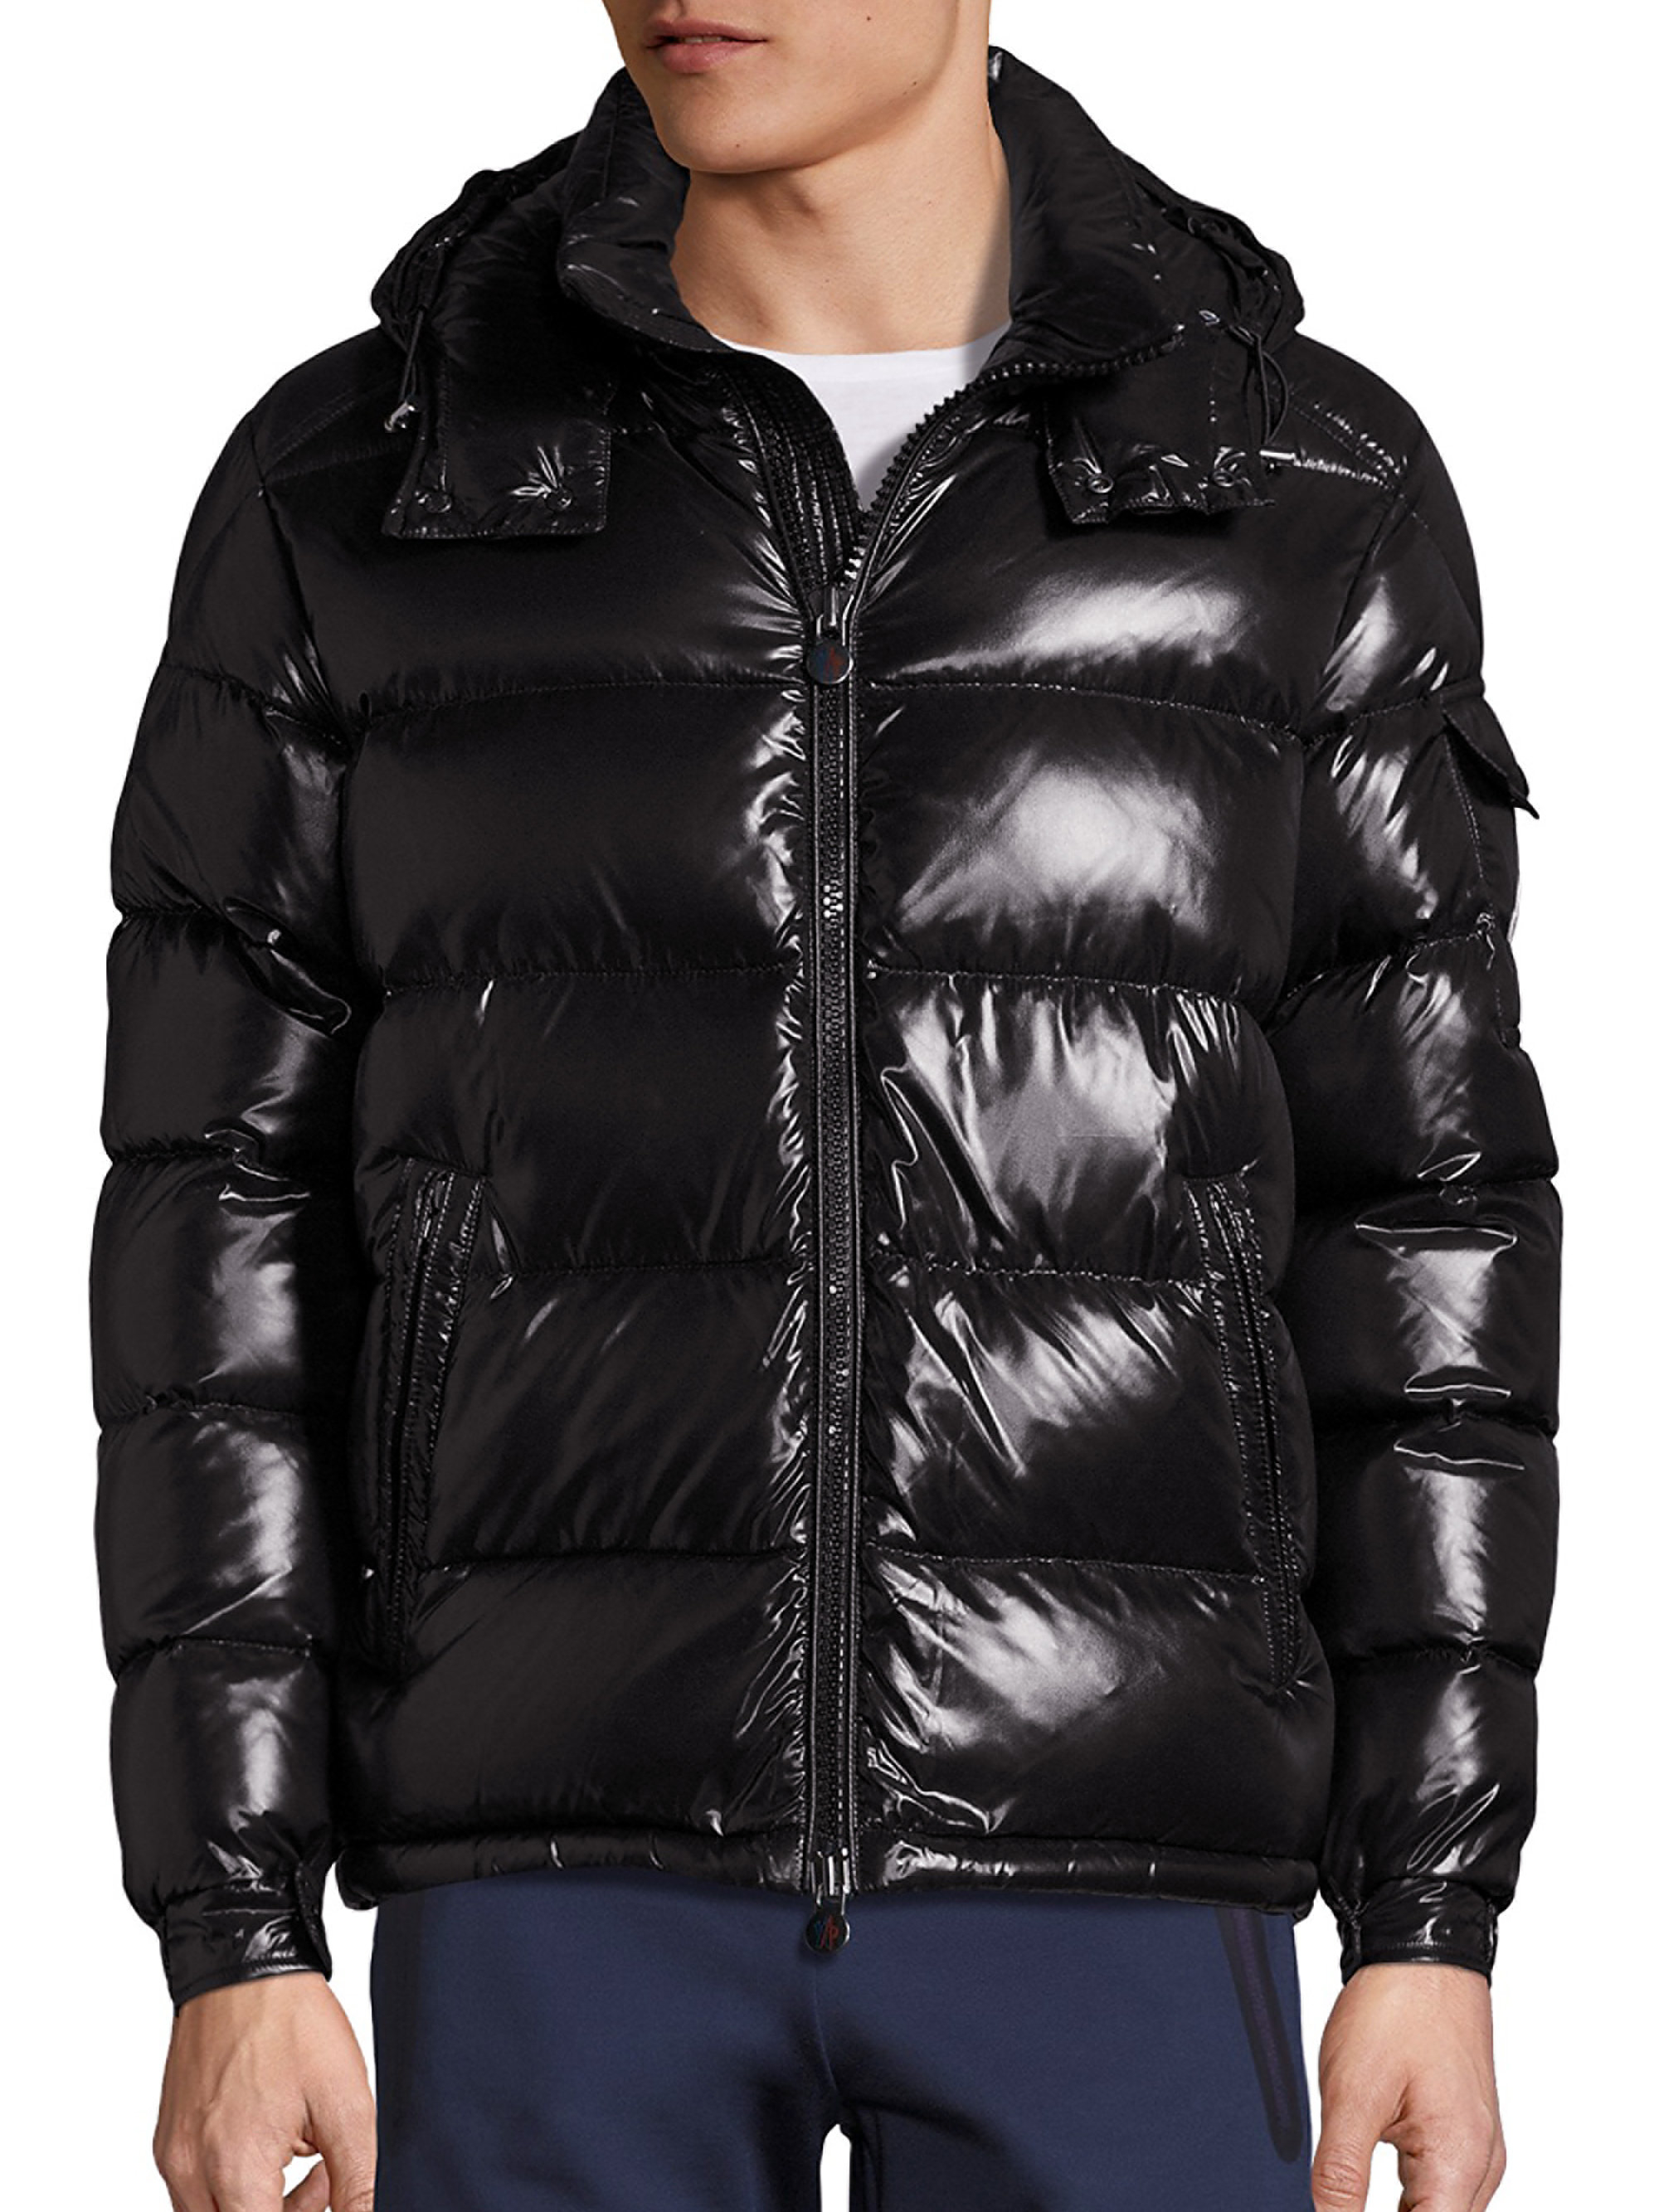 Find great deals on eBay for shiny puffer jacket. Shop with confidence.